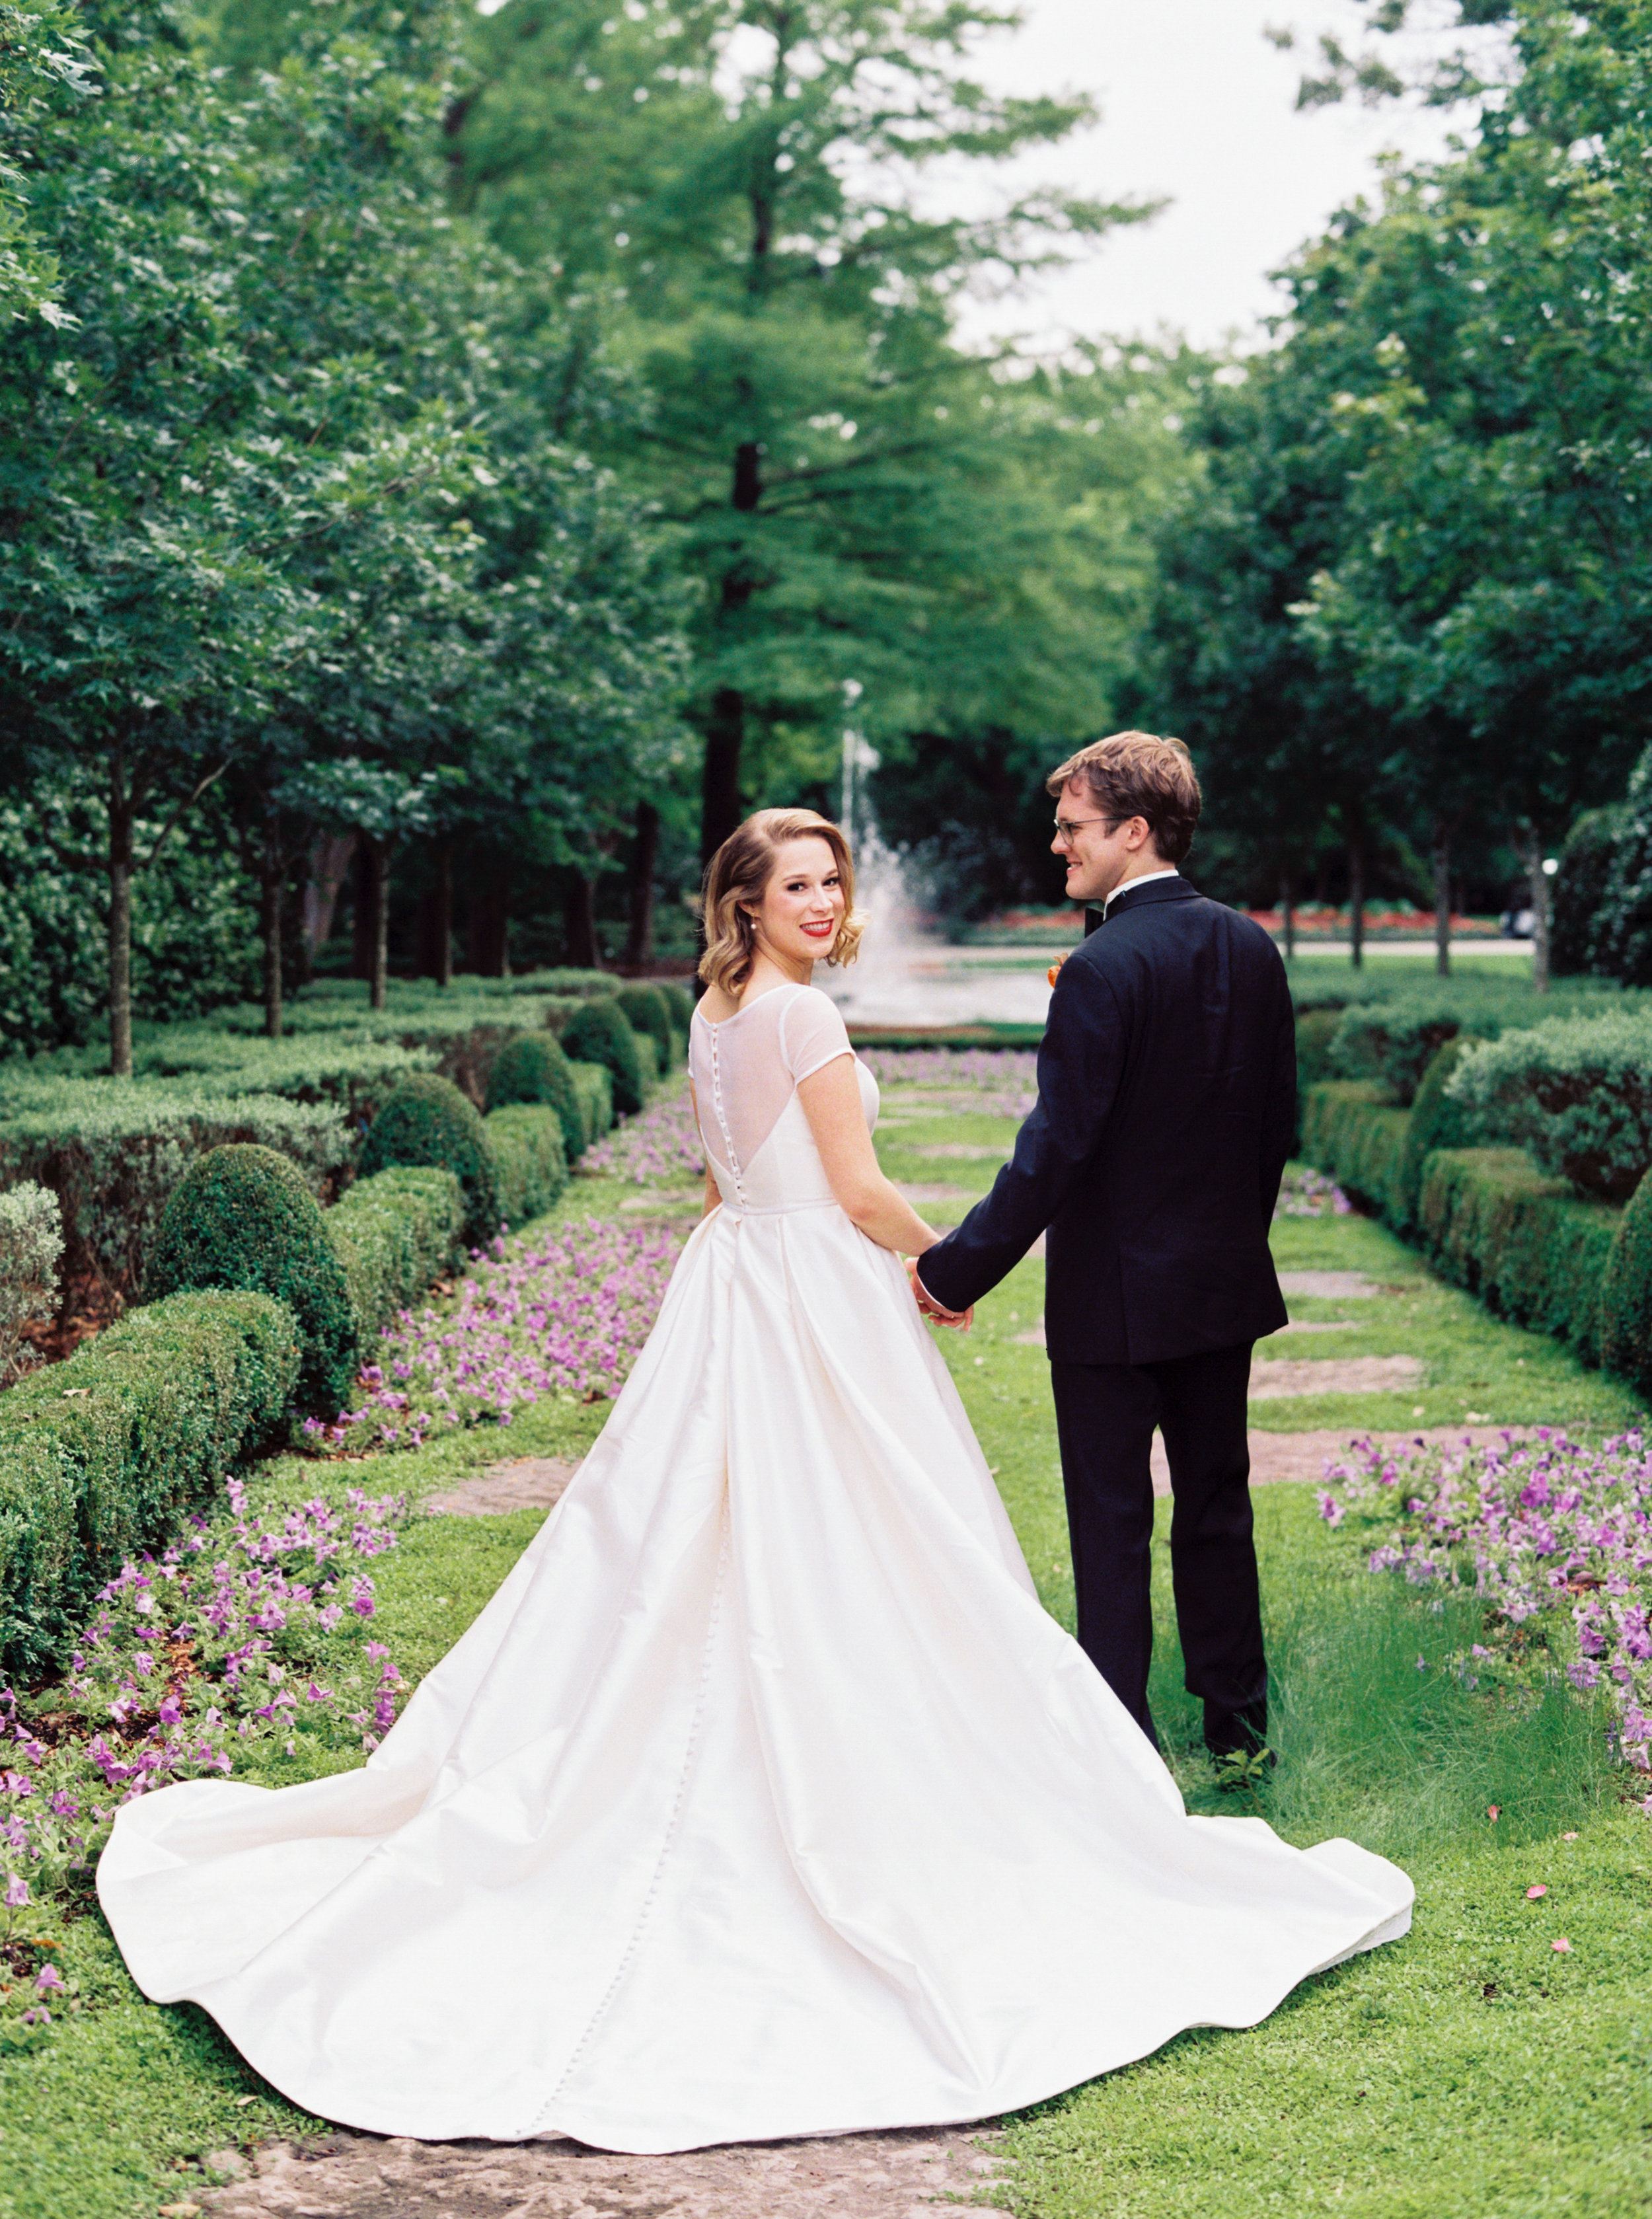 Ana-and-Nick-back-of-dress-The-Dallas-Arboretum-Ivory-and-Vine.jpg